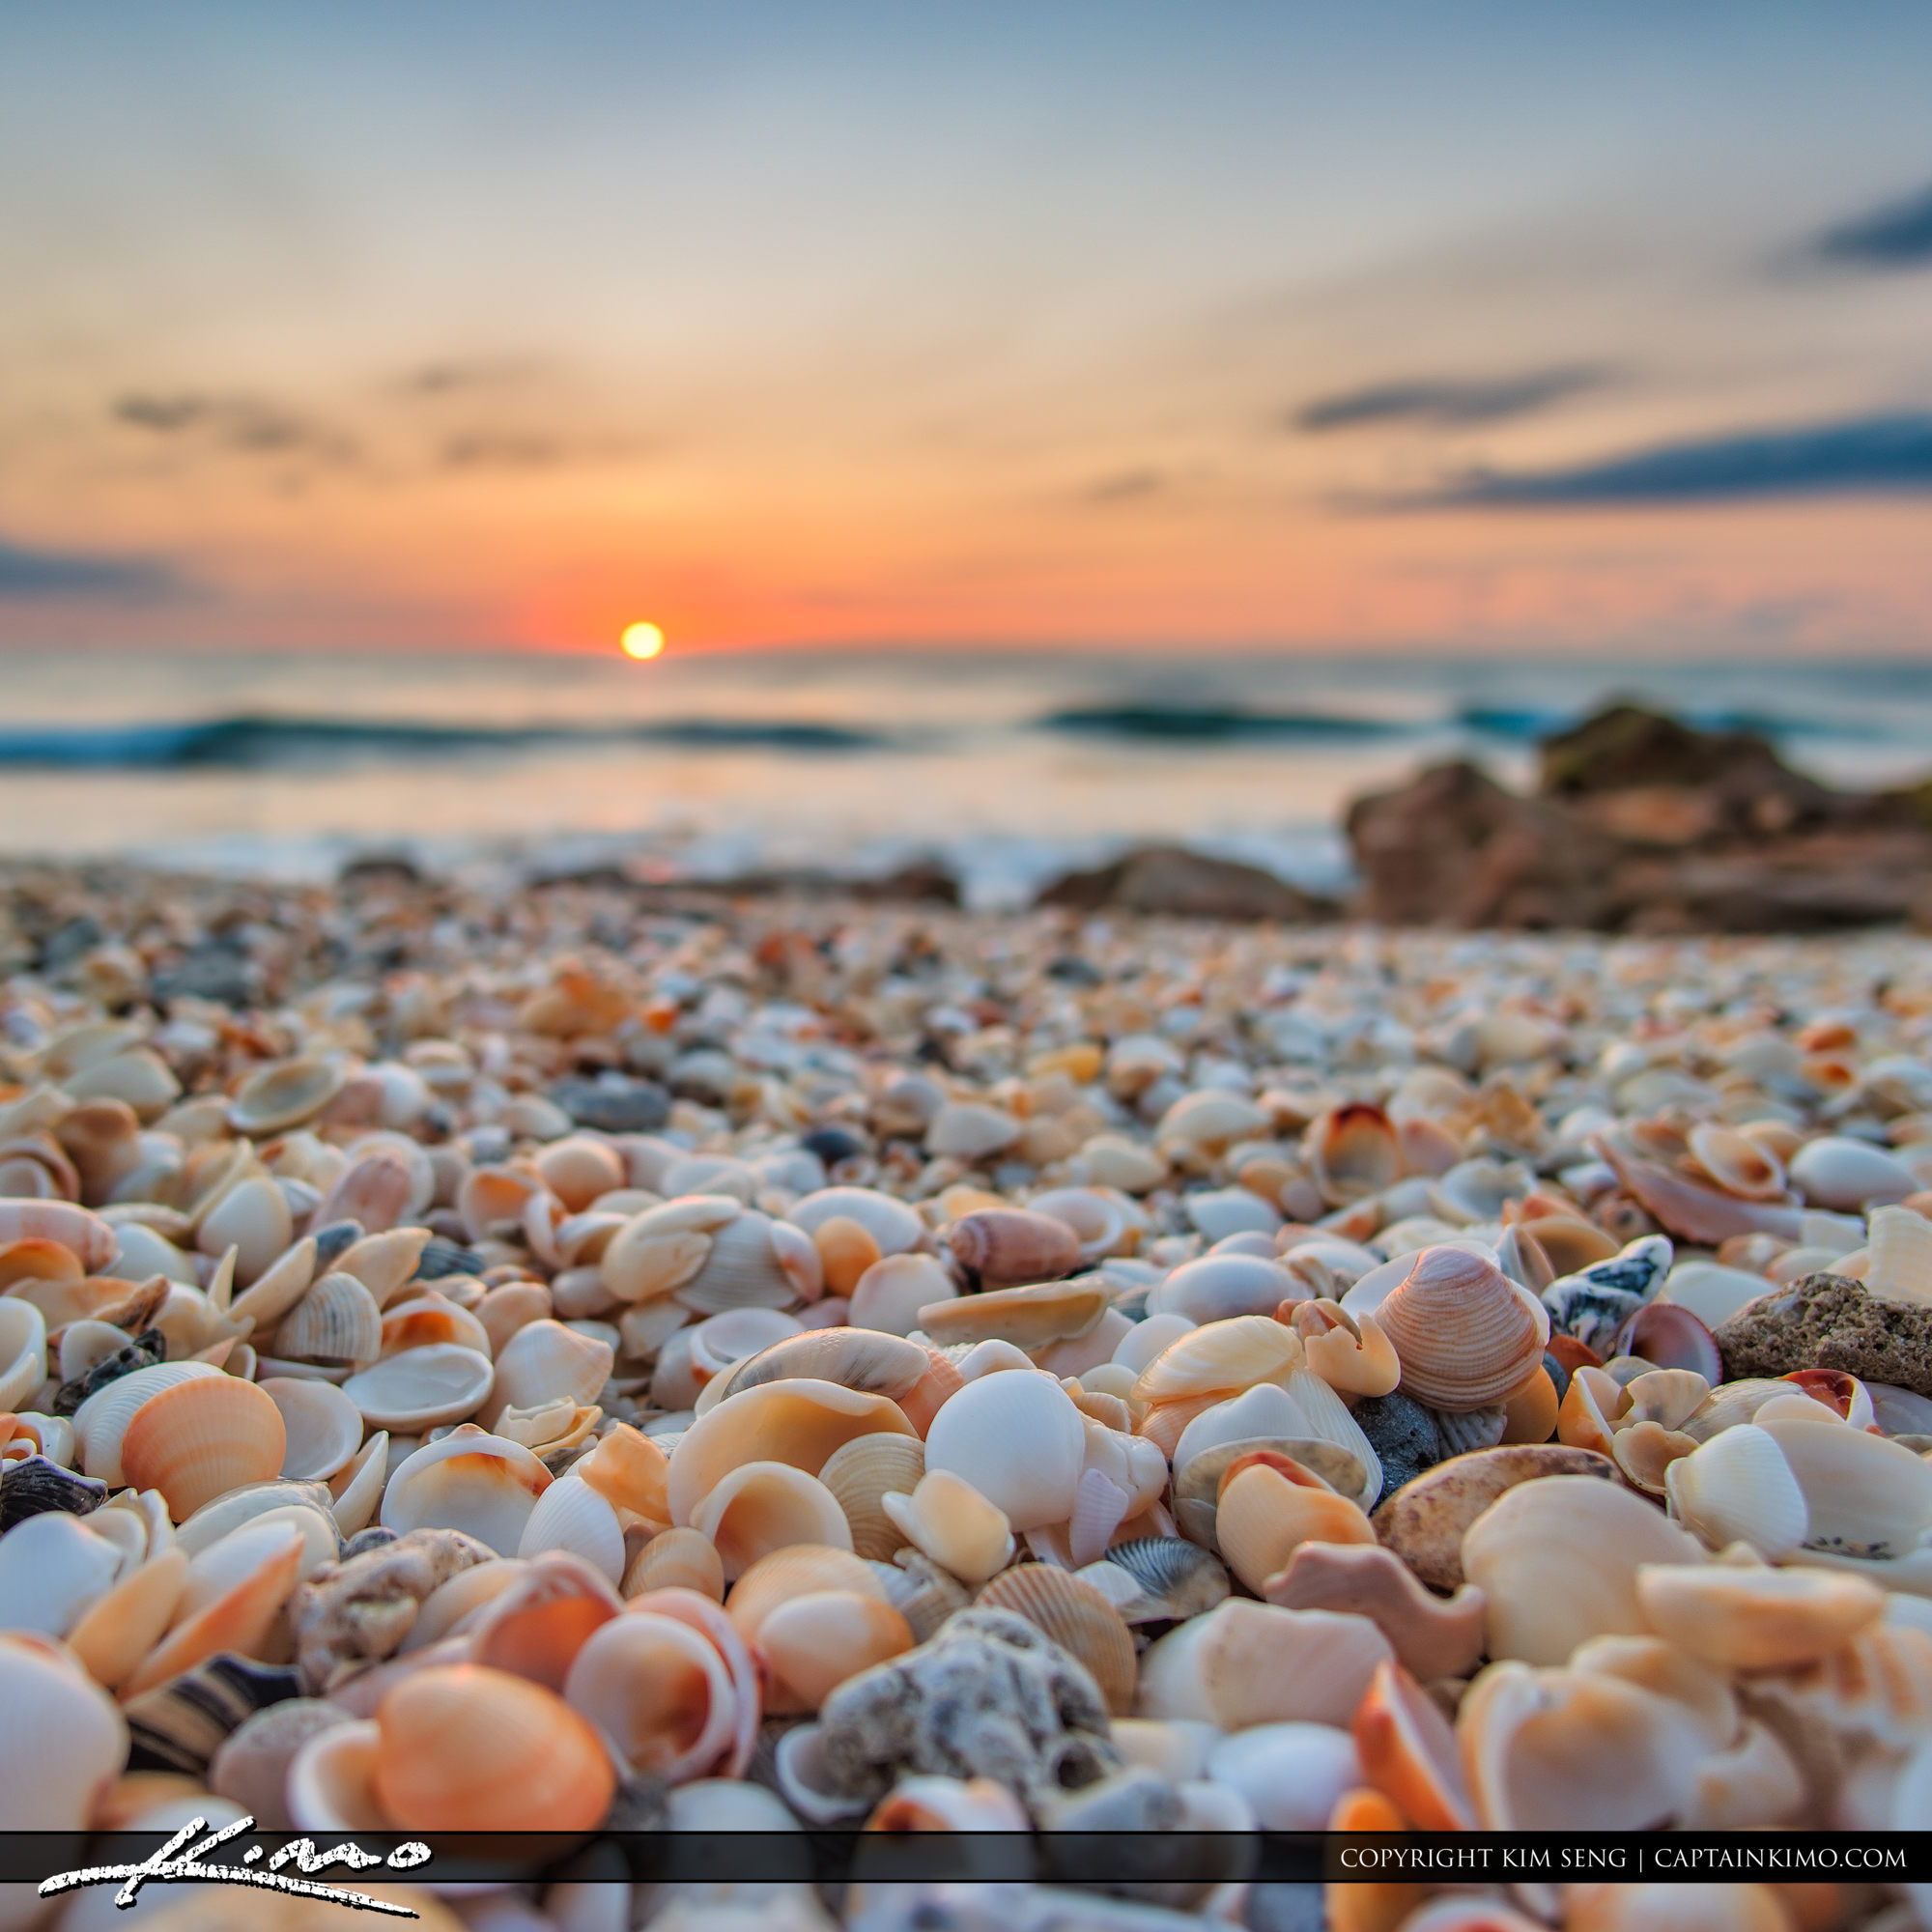 sunrise with shells at beach